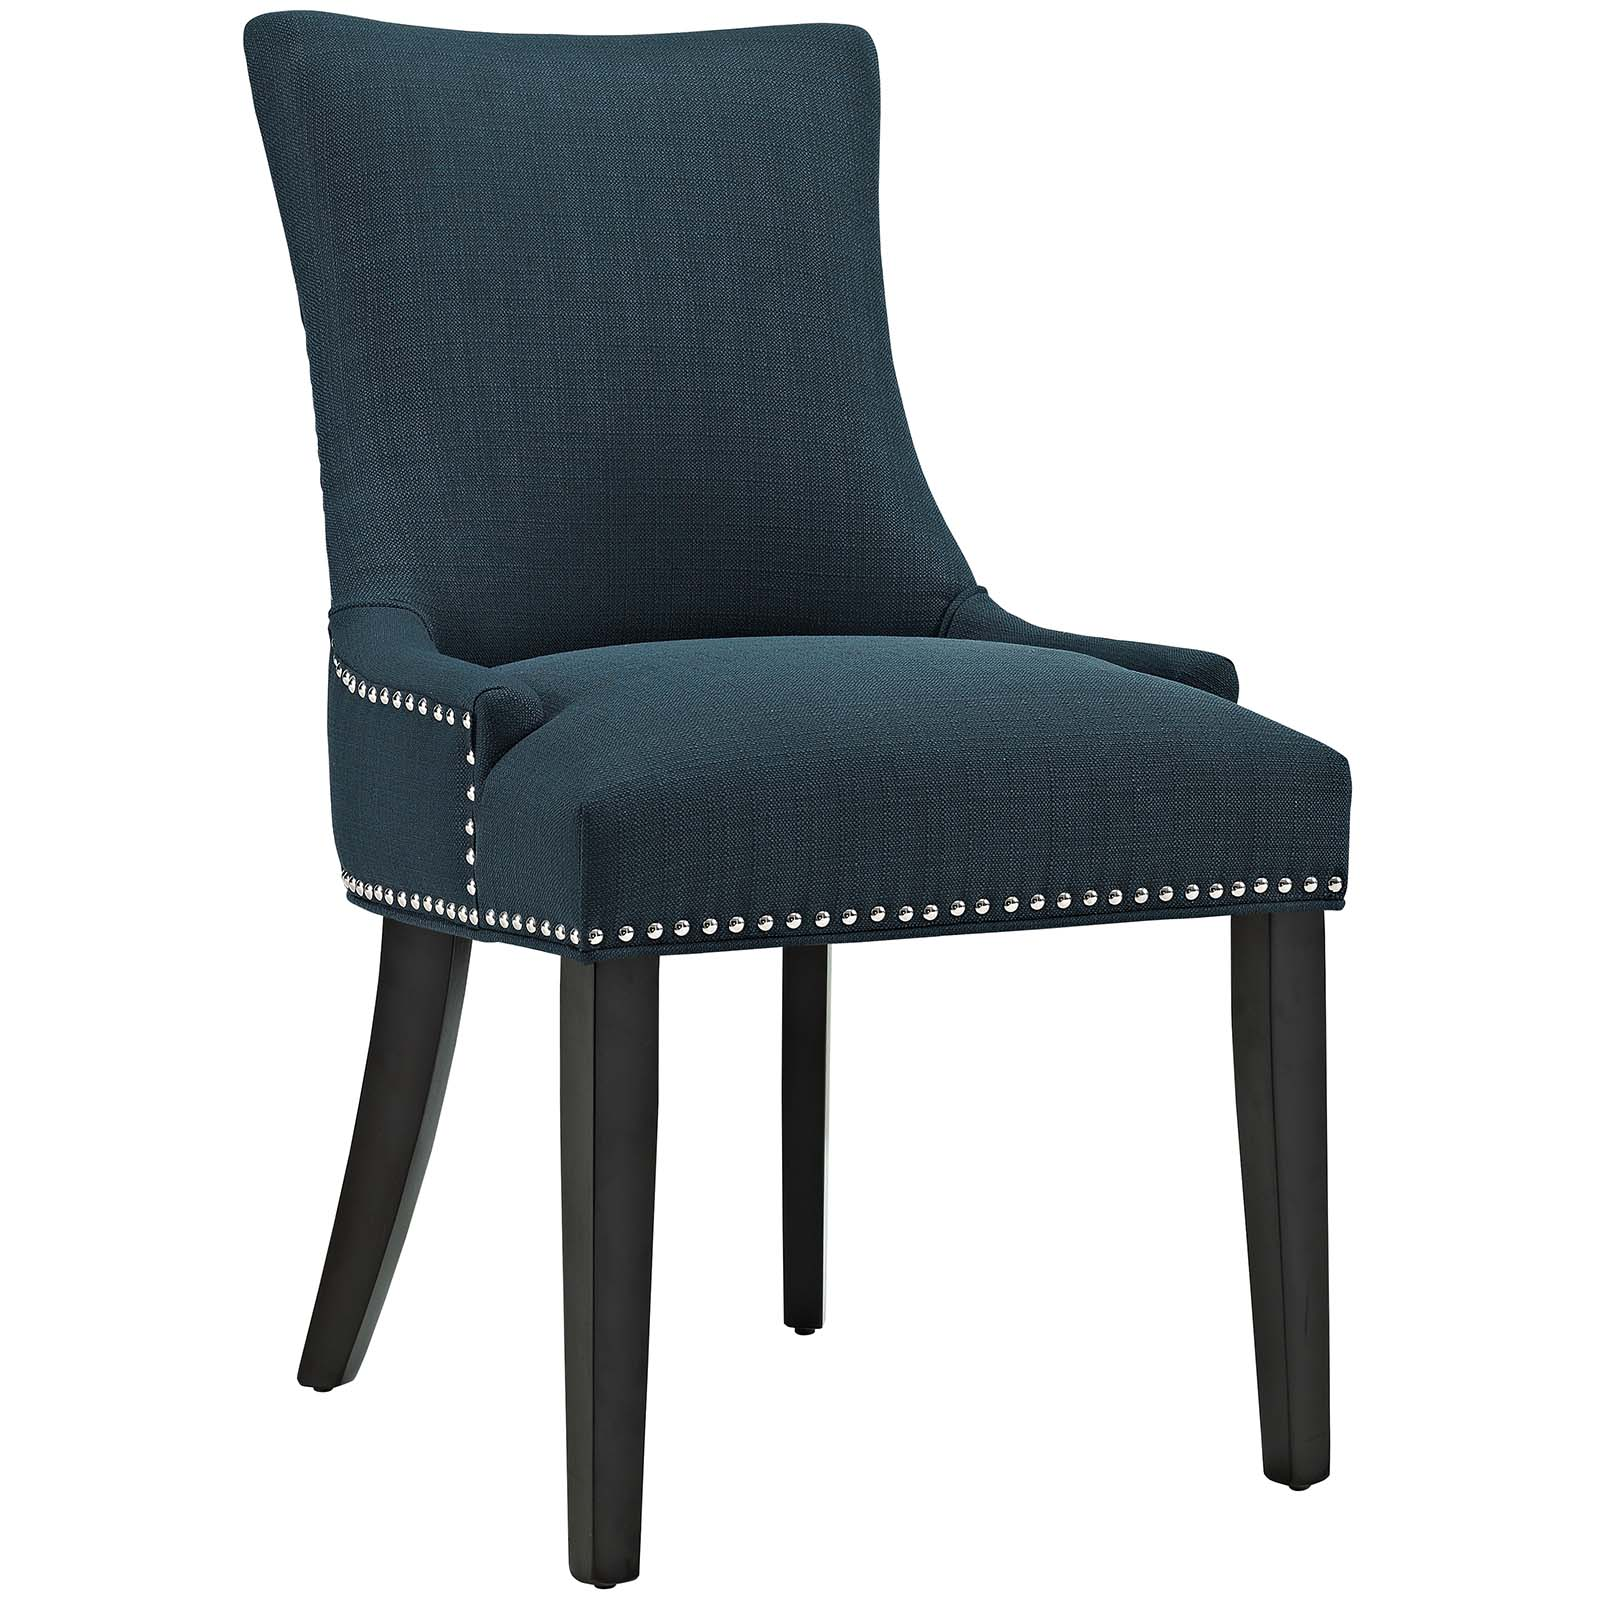 Modern Contemporary Urban Design Kitchen Room Dining Chair, Navy Blue, Fabric Wood